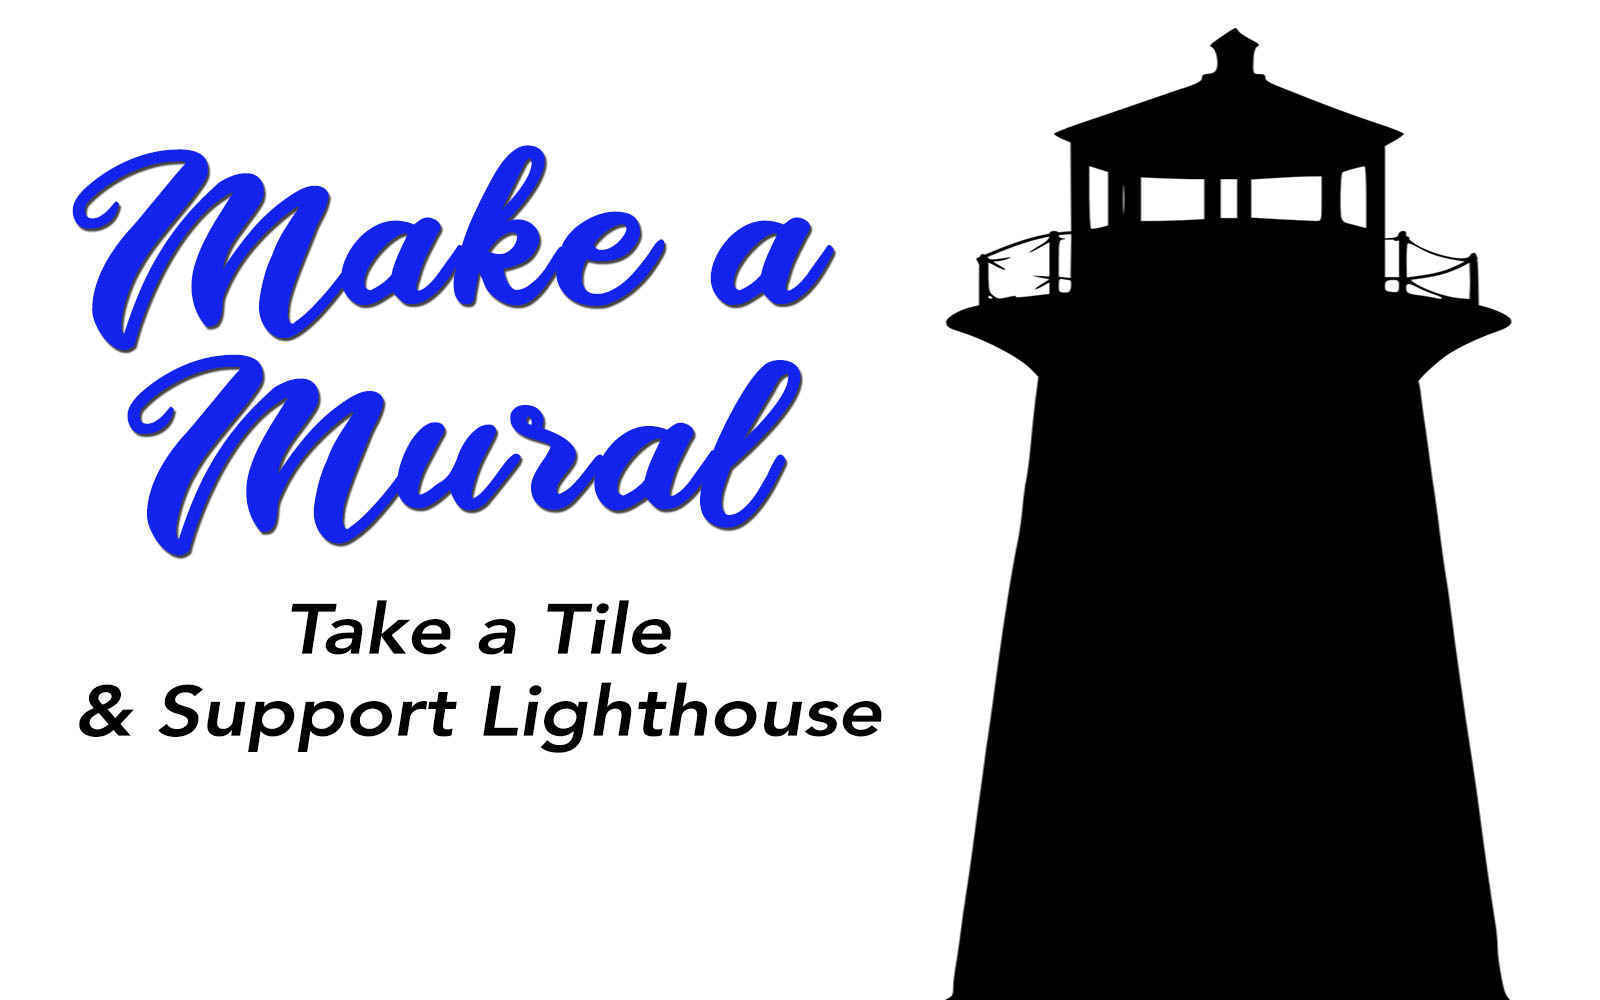 Take a Tile and Support Lighthouse image